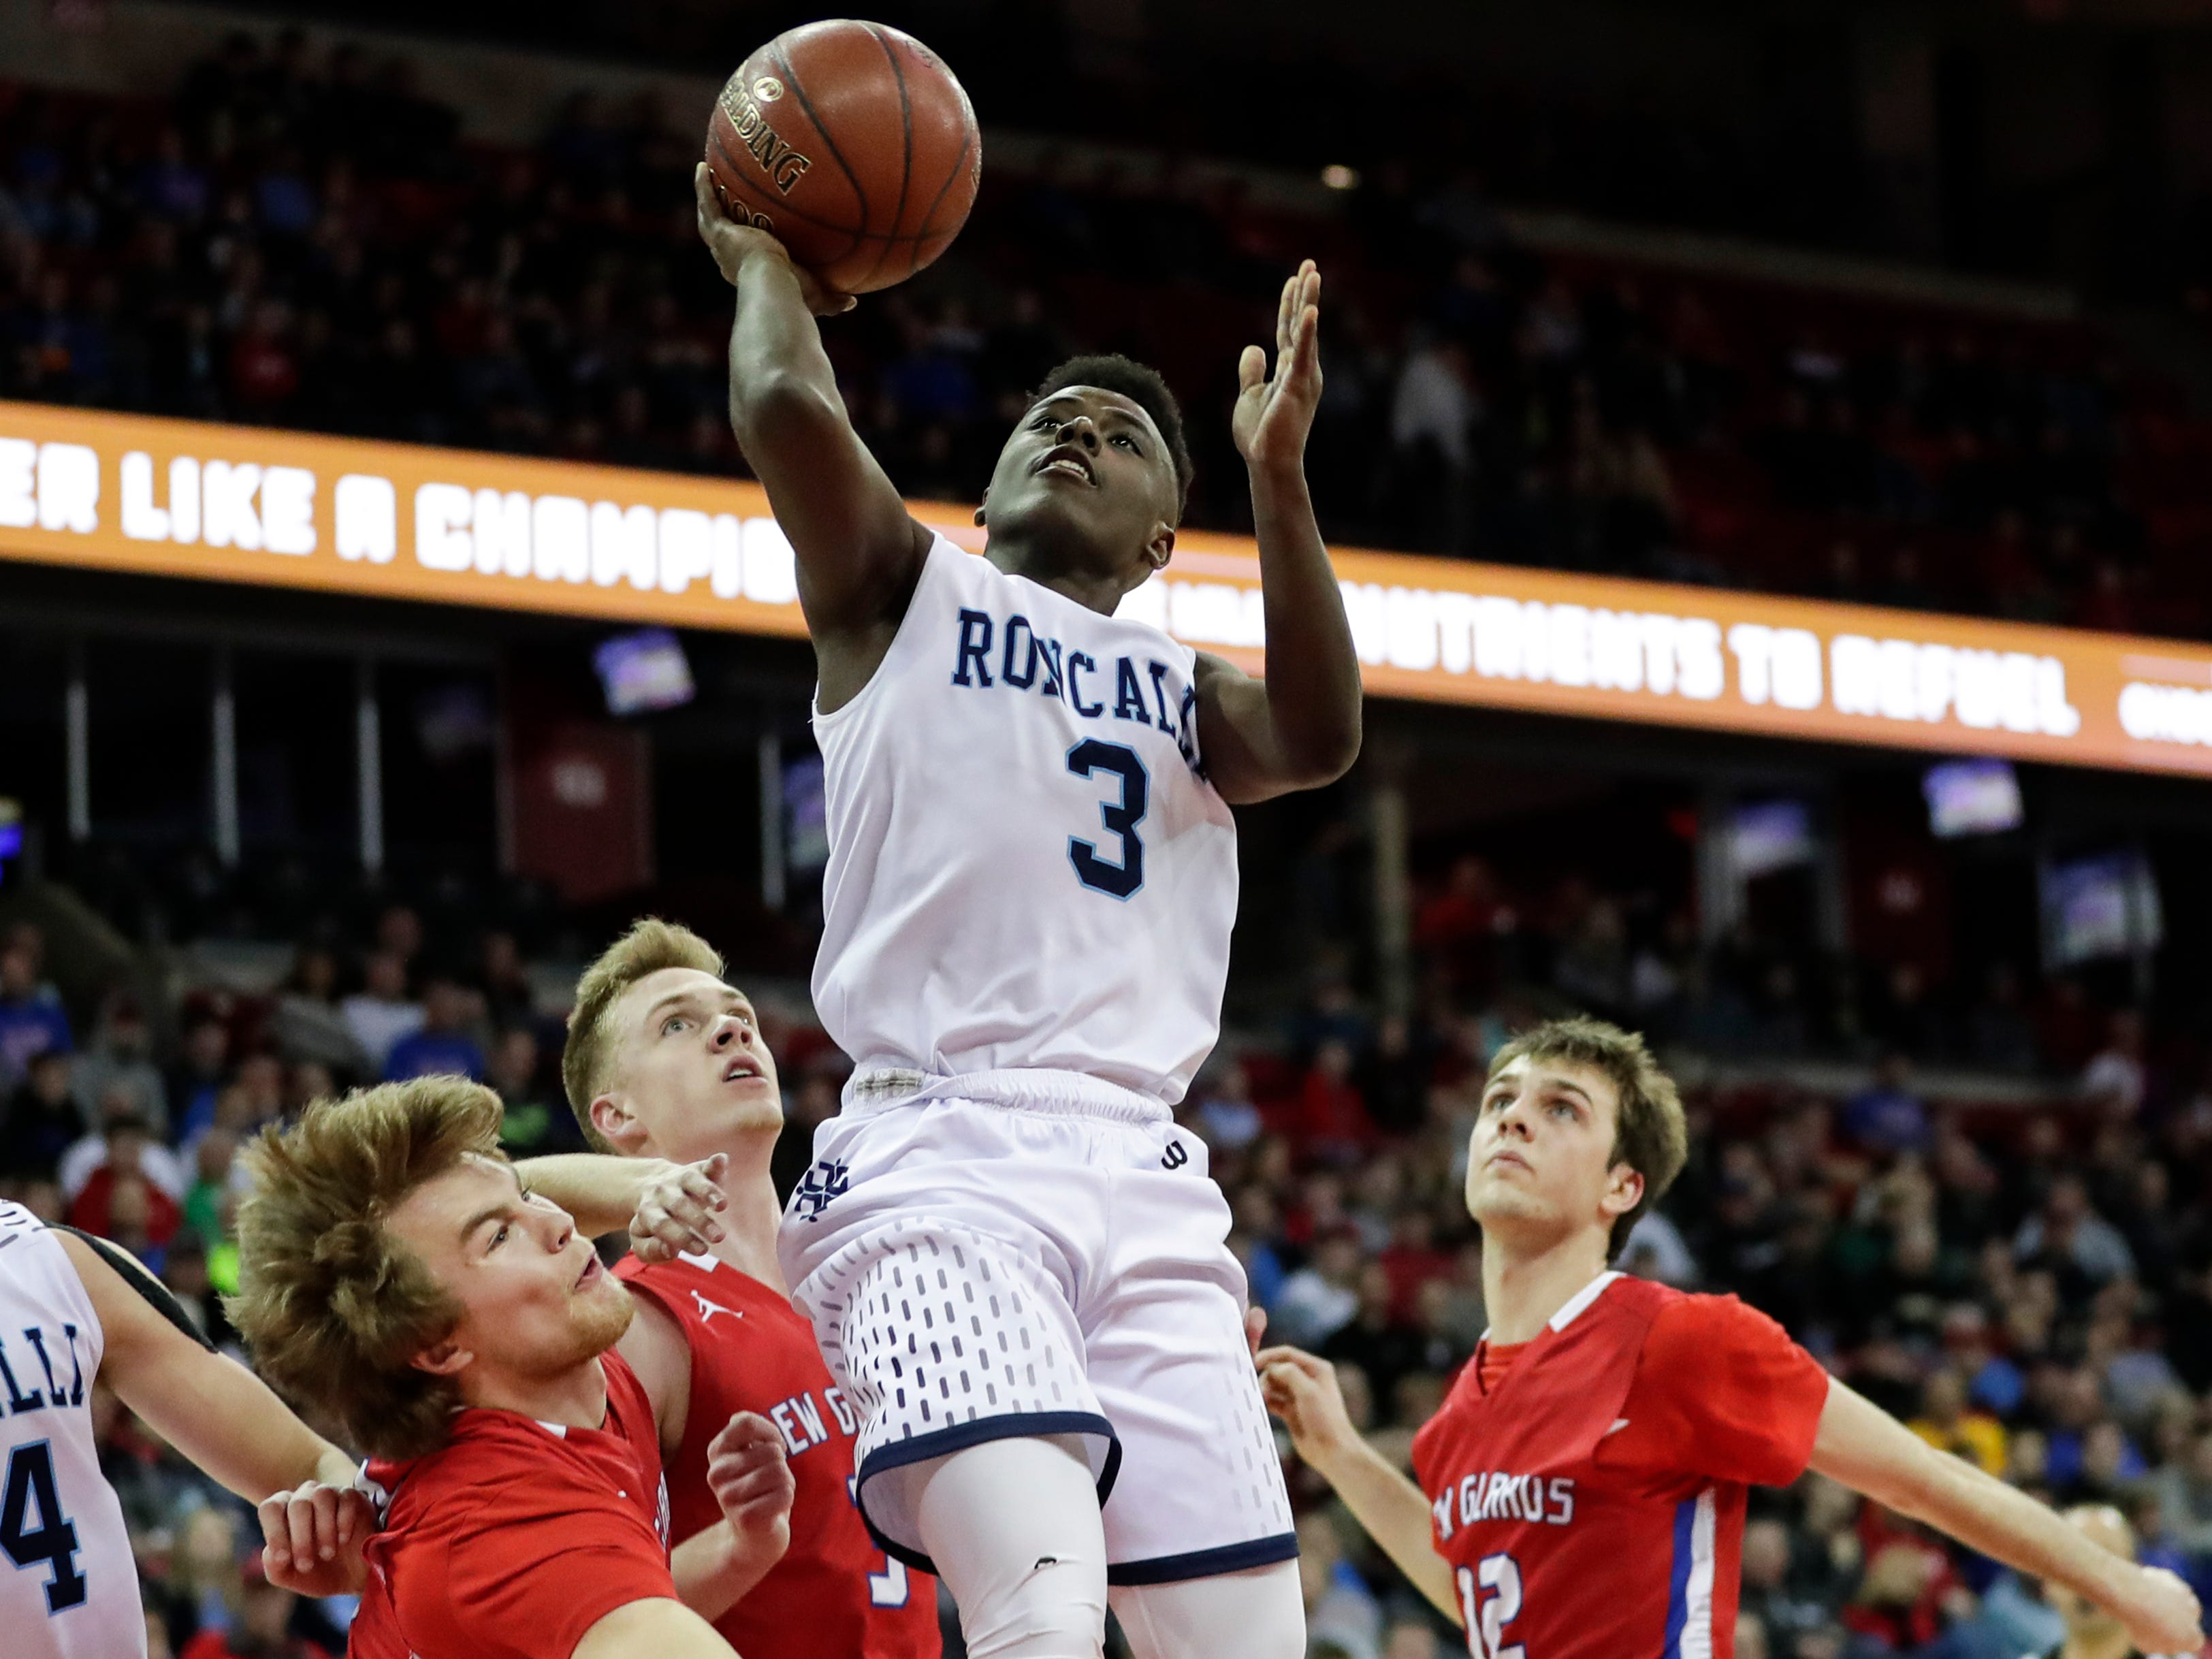 Roncalli High School's Chombi Lambert (3) shoots against New Glarus High School during their WIAA Division 4 boys basketball state semifinal at the Kohl Center Thursday, March 14, 2019, in Madison, Wis.